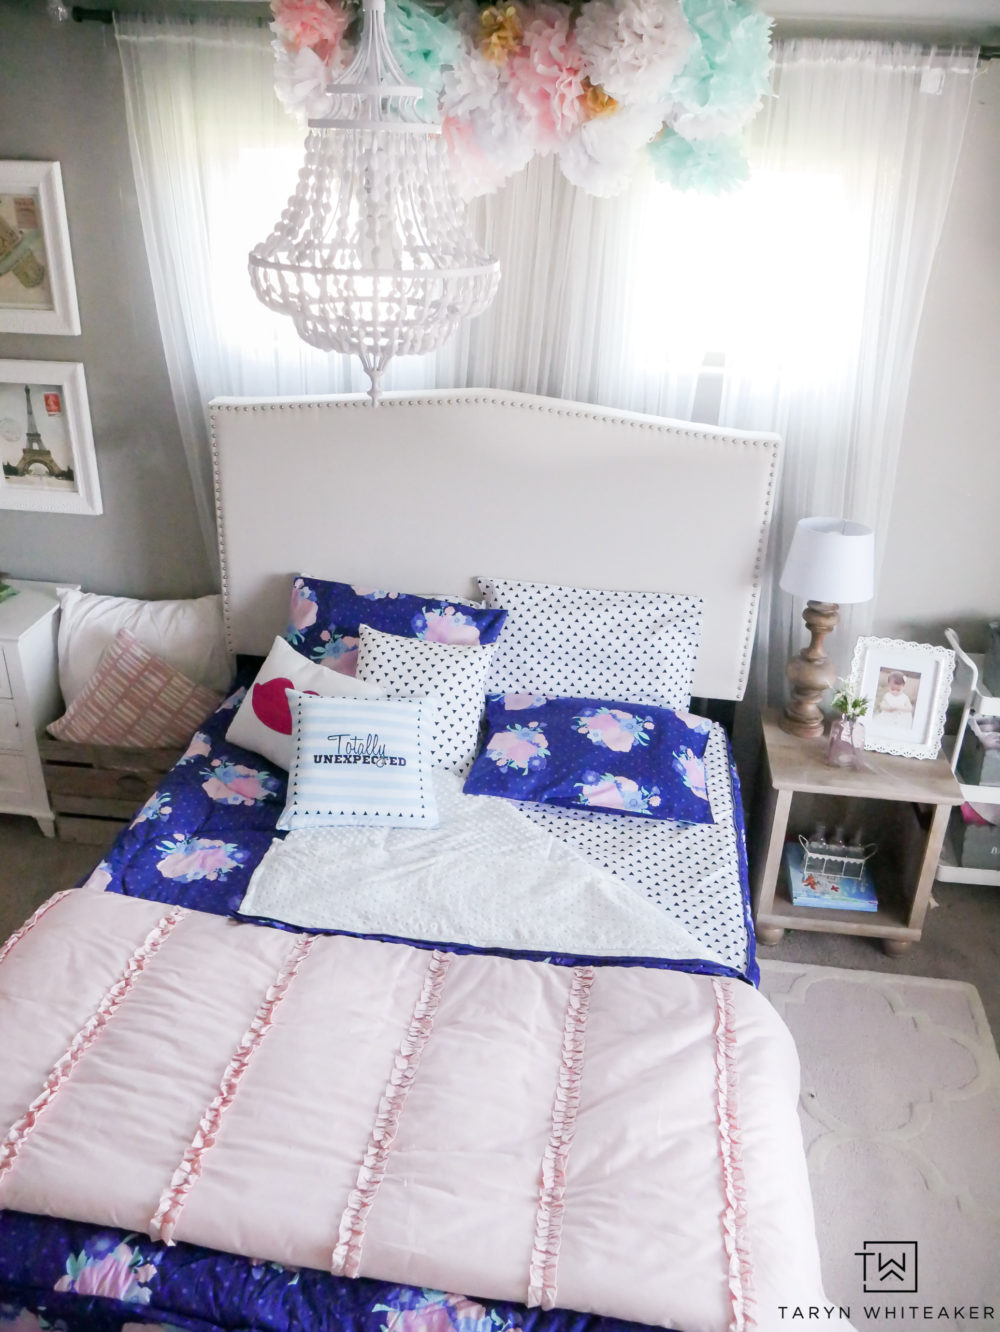 Beddy's Bedding: Cute and fun little girls room with new zipper Beddys Bedding! Just zip on and off for easy use! I love this navy and pink floral bedding set!